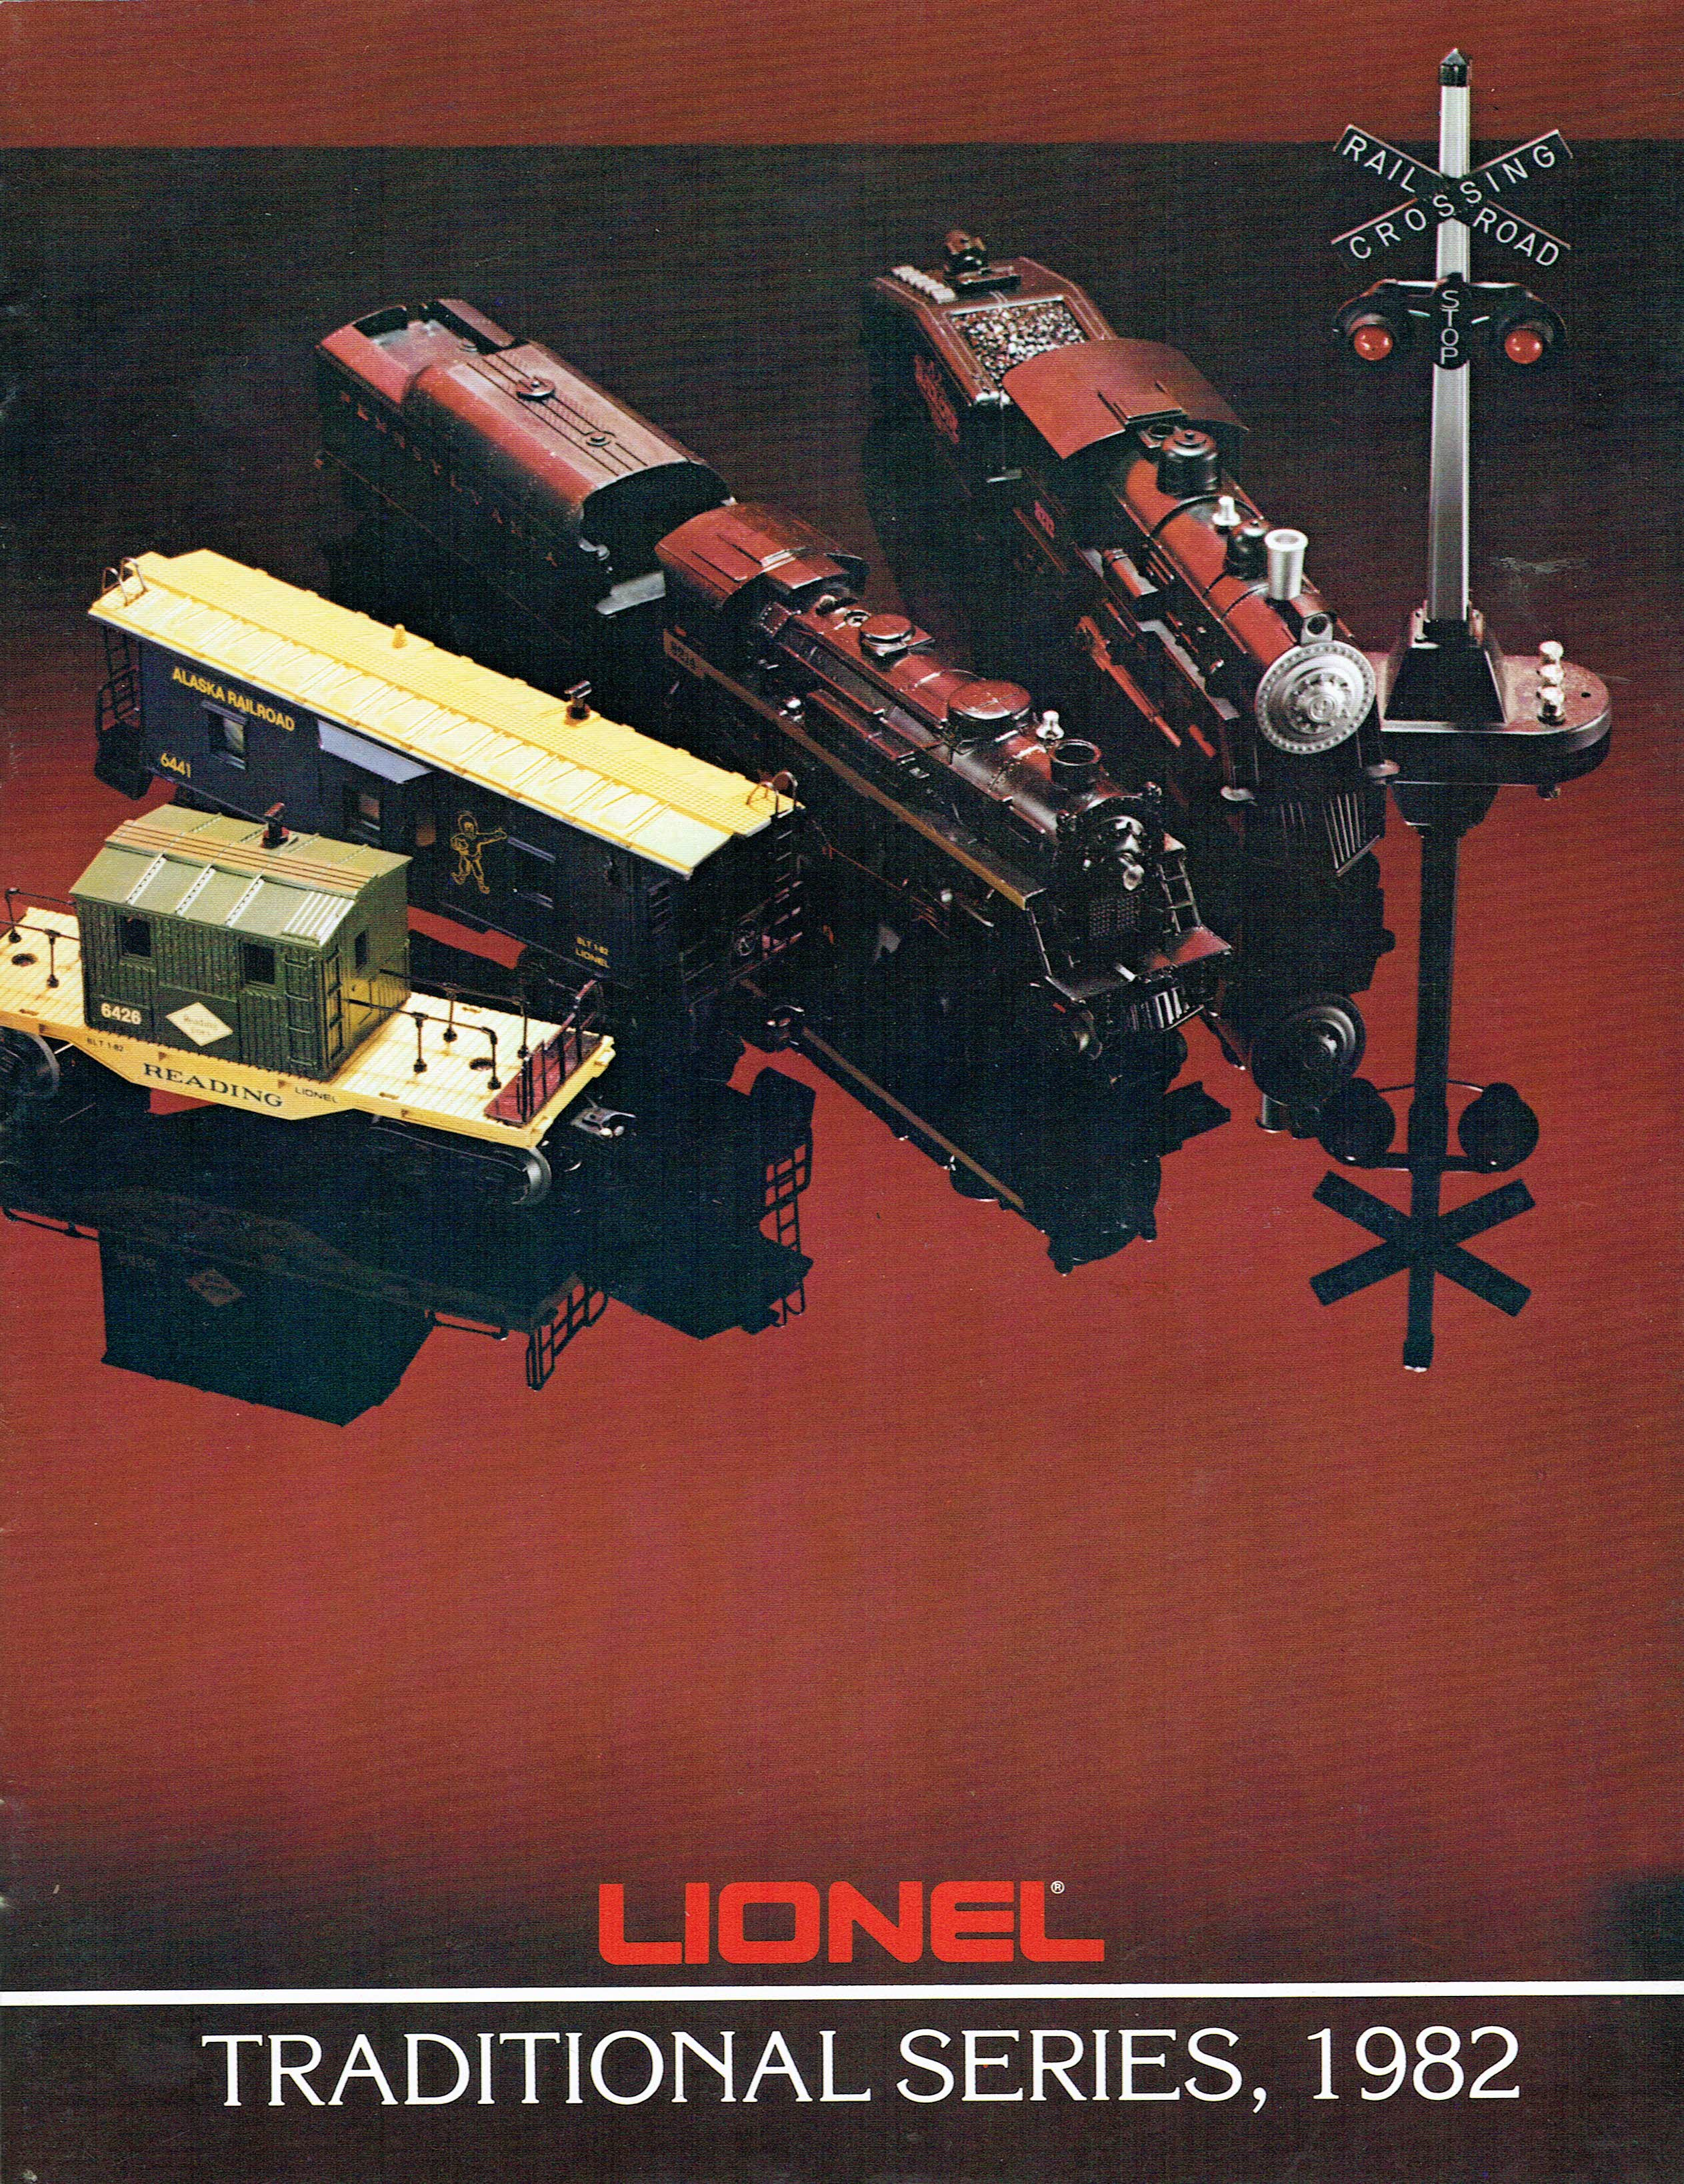 Lionel 1982 Traditional Series Catalog image